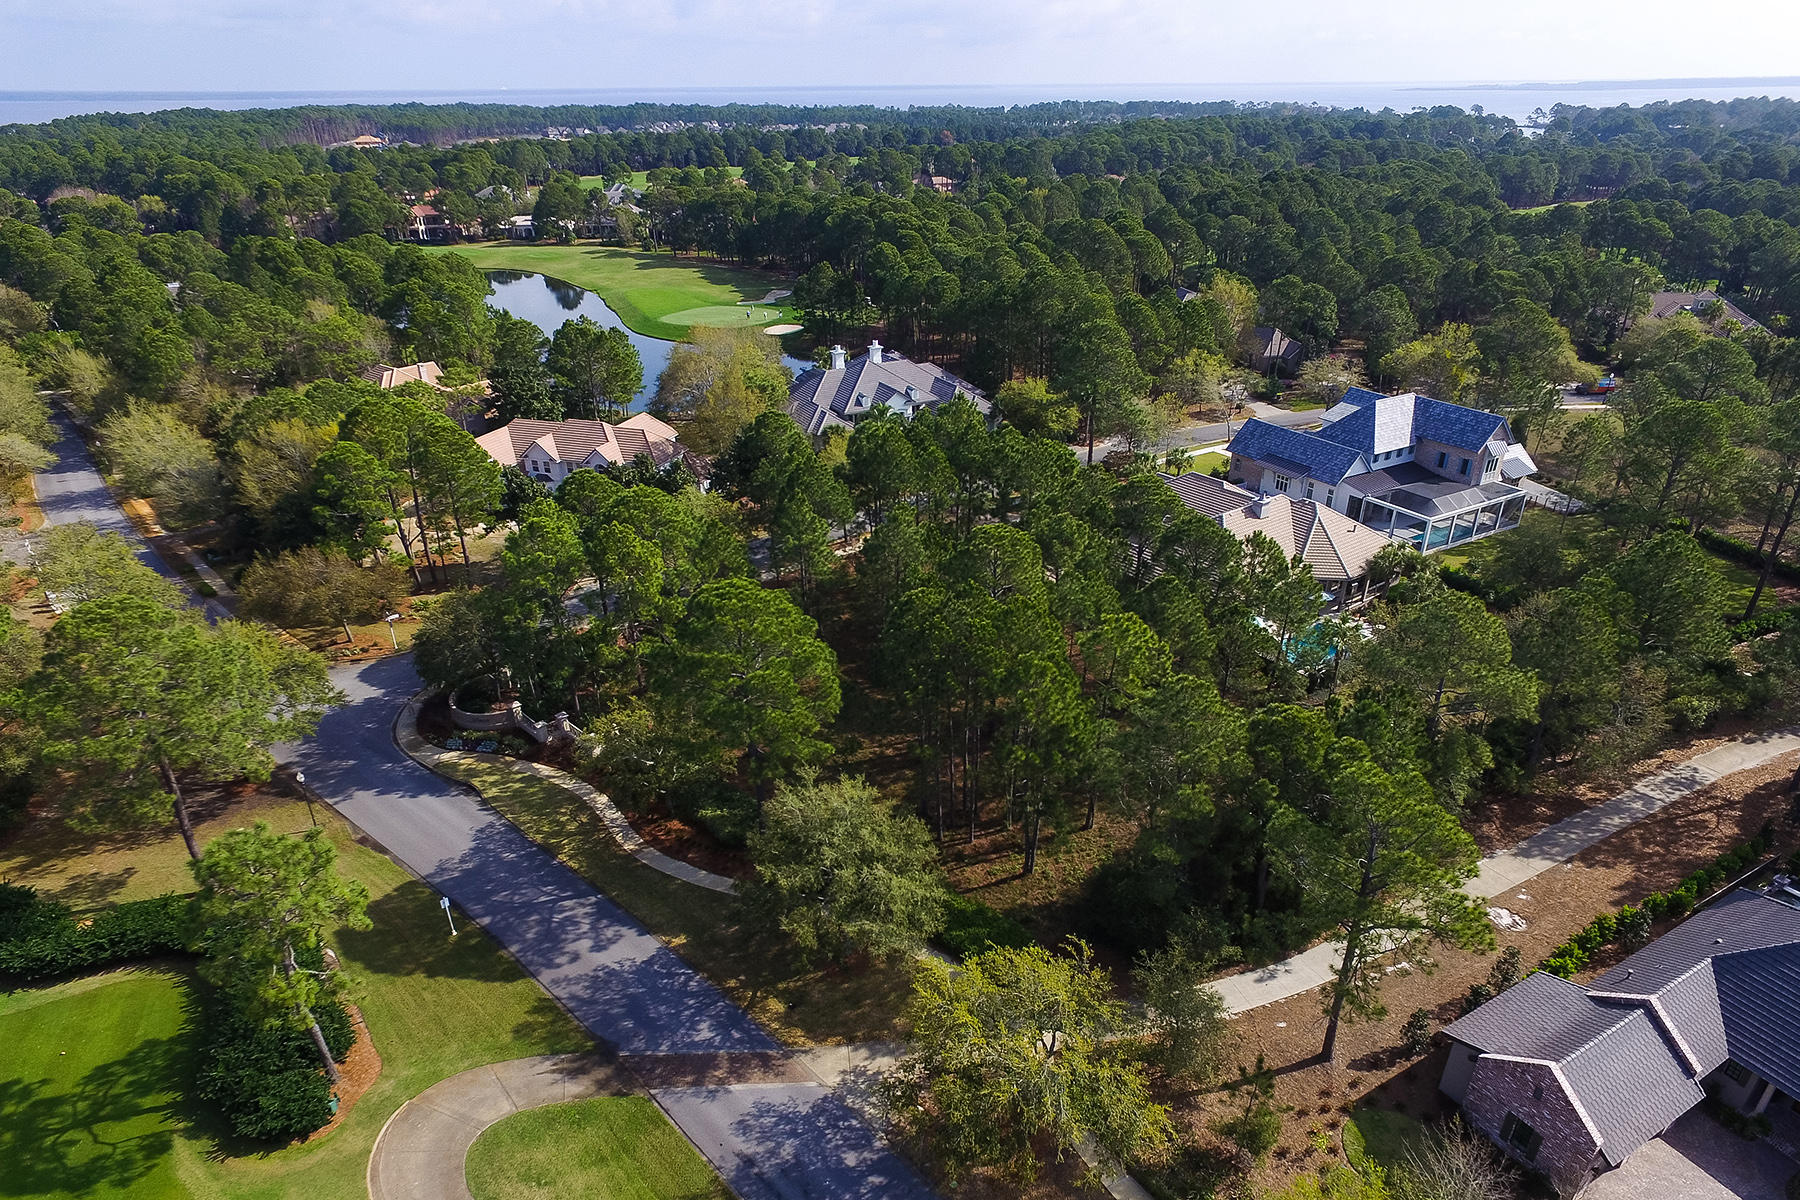 Земля для того Продажа на CORNER GOLF-VIEW LOT IN ELITE BURNT PINE NEIGHBORHOOD 3130 Merion Drive Miramar Beach, Флорида, 32550 Соединенные Штаты